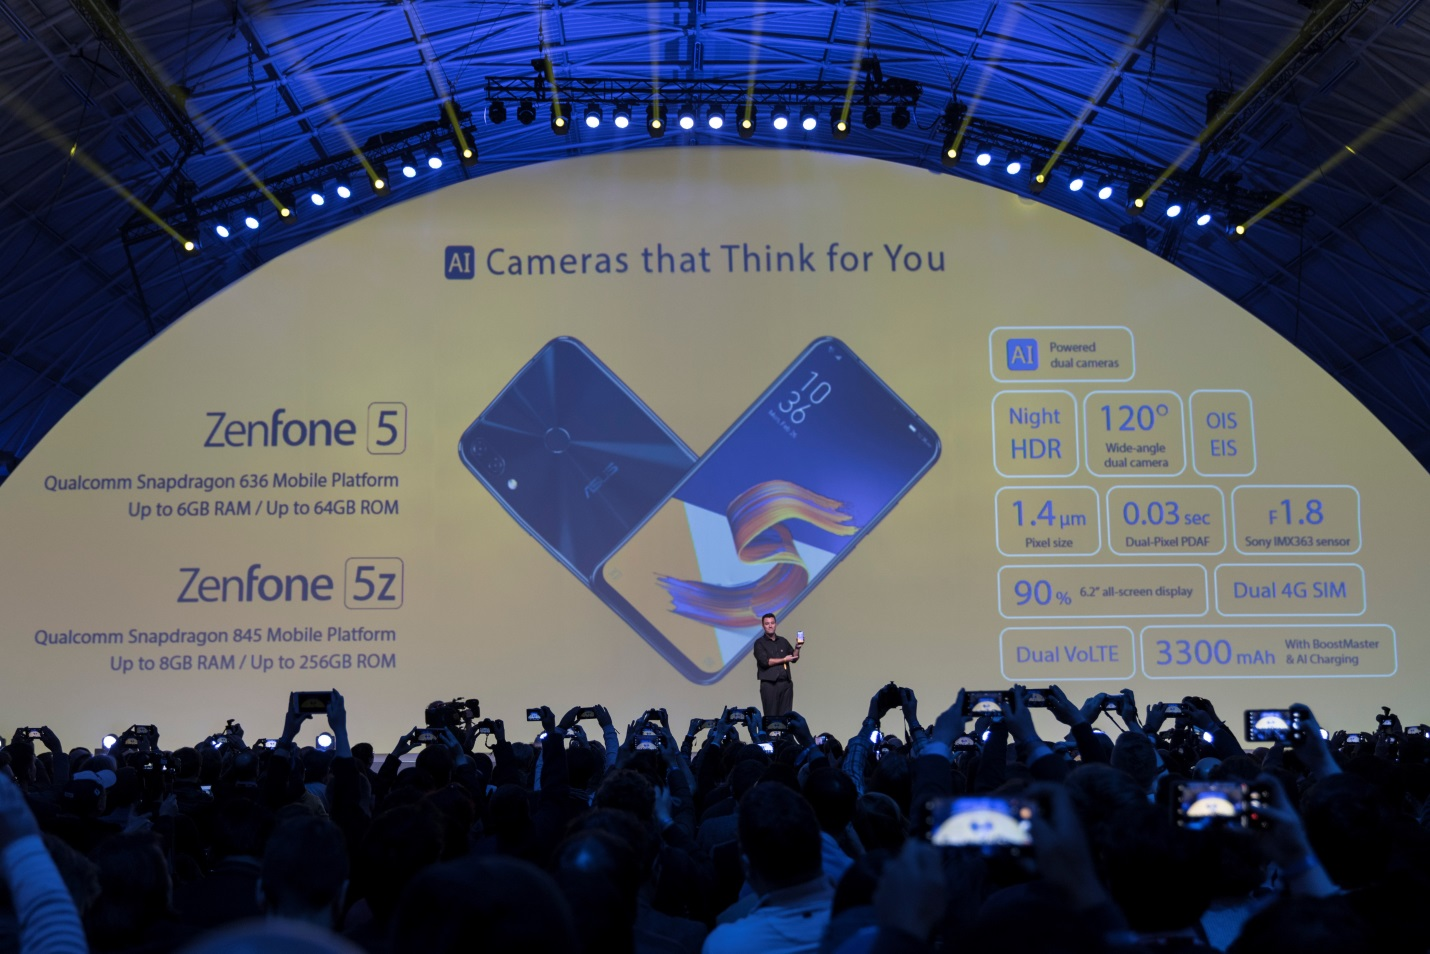 ASUS'  ZenFone 5 Series, Takes MWC 2018 and the World by Storm